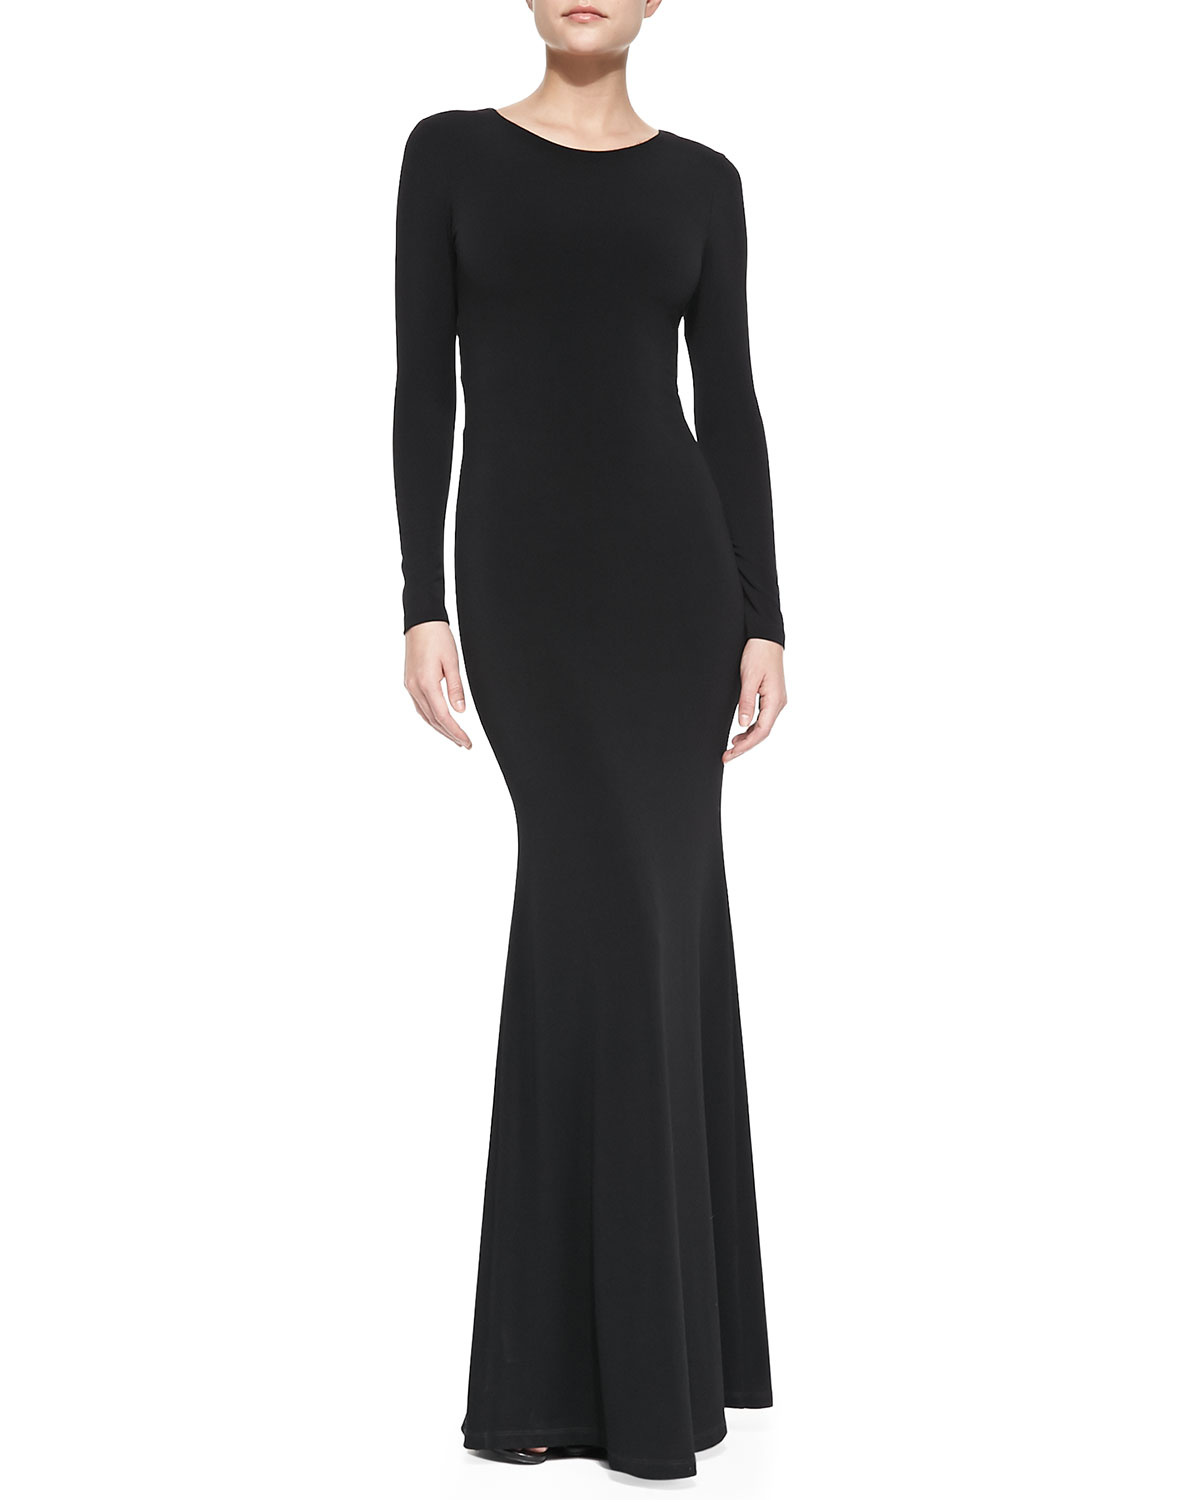 Womens Long Sleeve Maxi Dress With Back Piping Accent   Alice + Olivia   Black